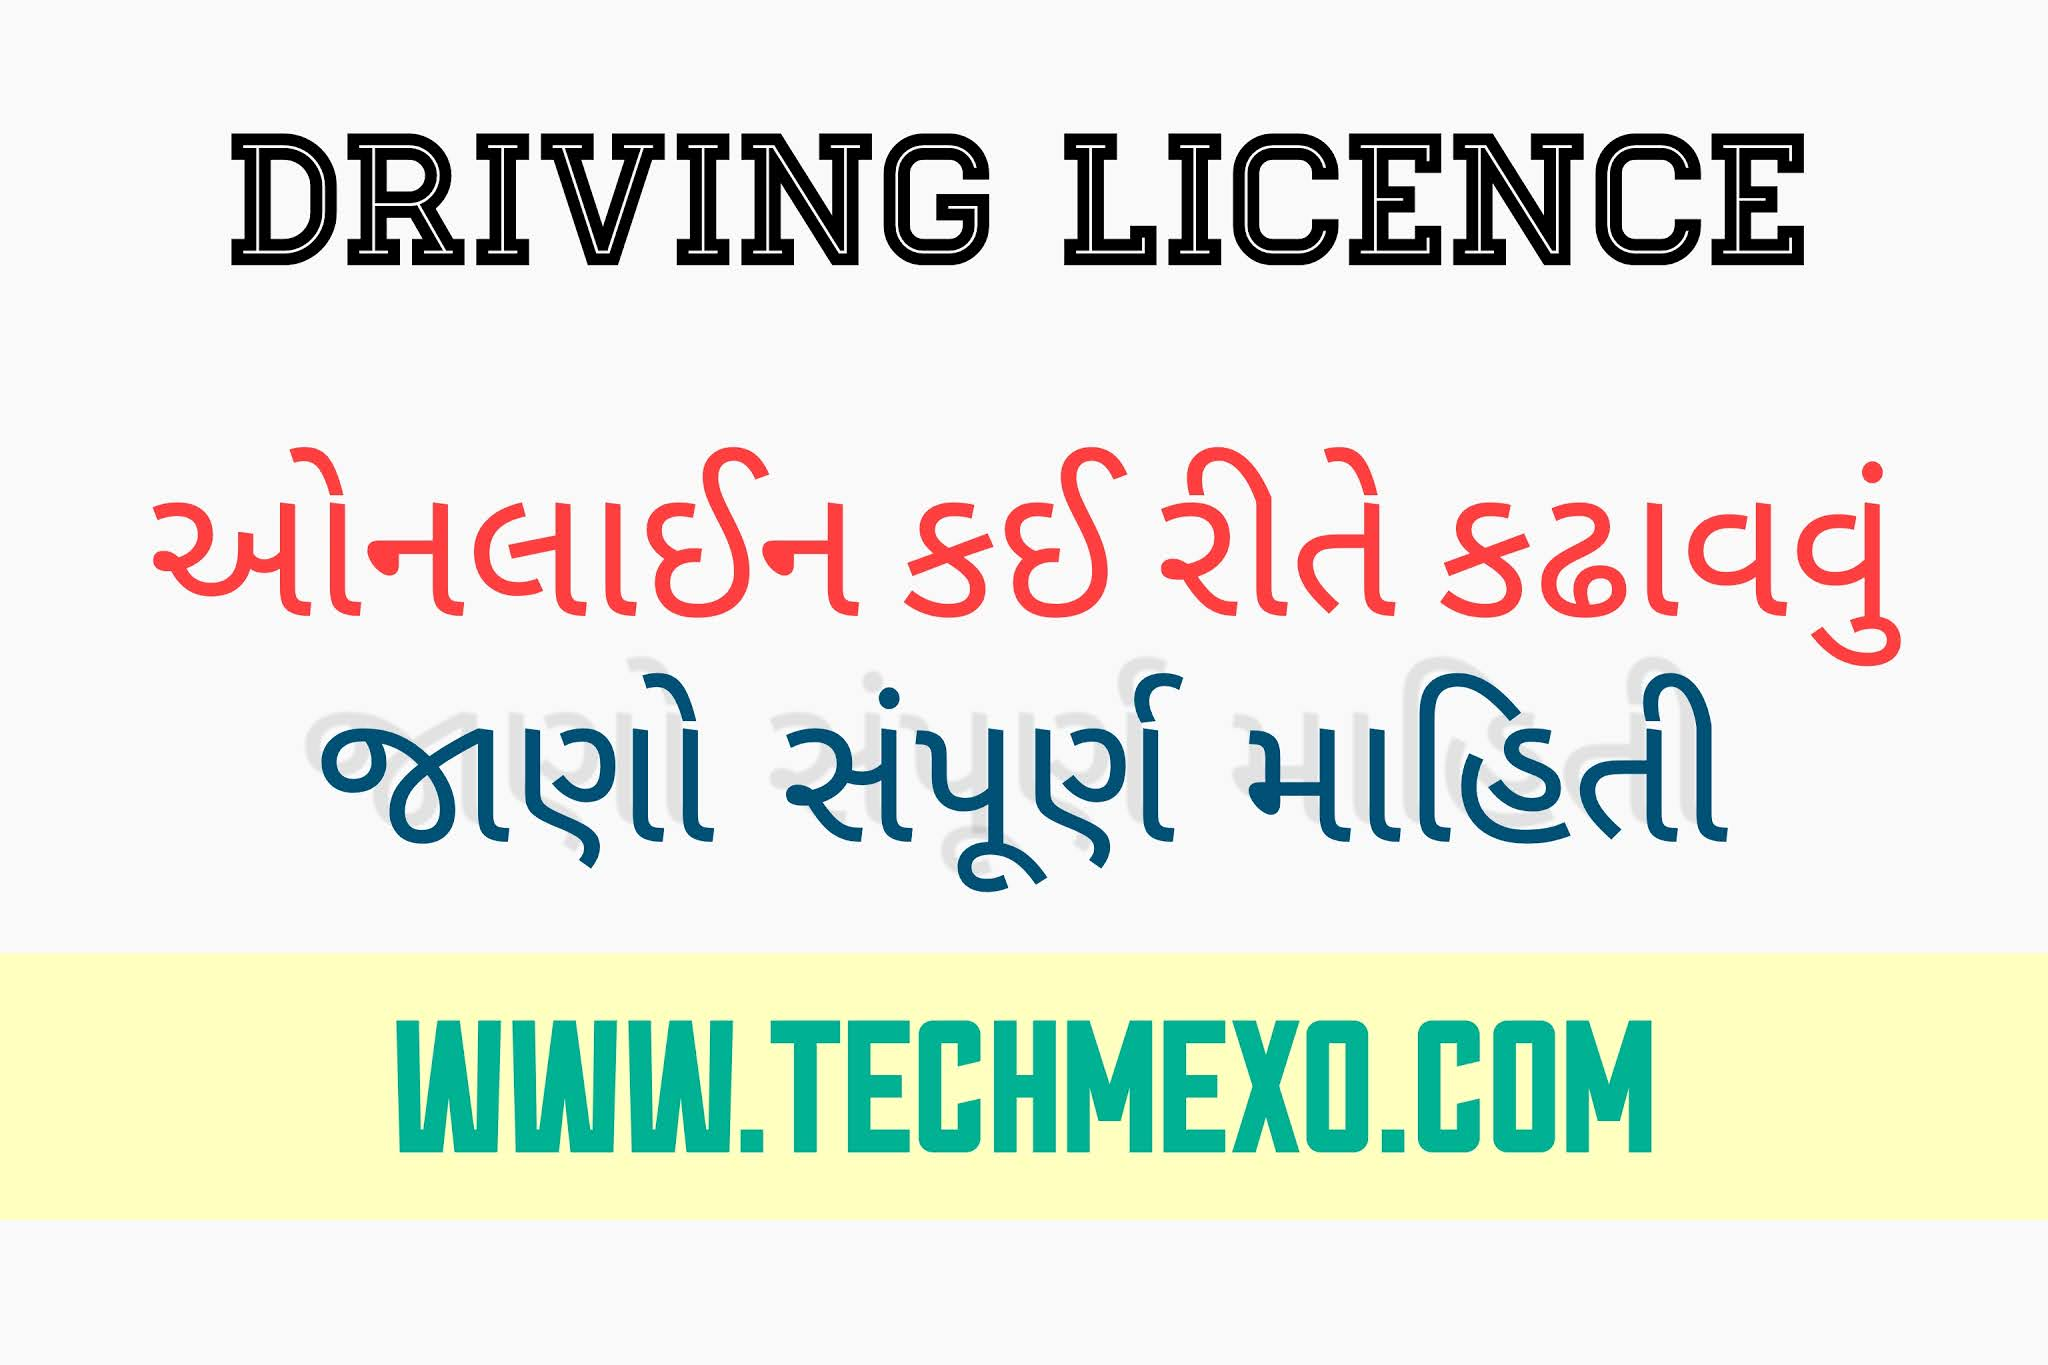 Apply Your Driving Licence Gujarat – Online  & Offline Driving Licence Apply in Gujarat -ડ્રાઇવિંગ લાયસન્સ